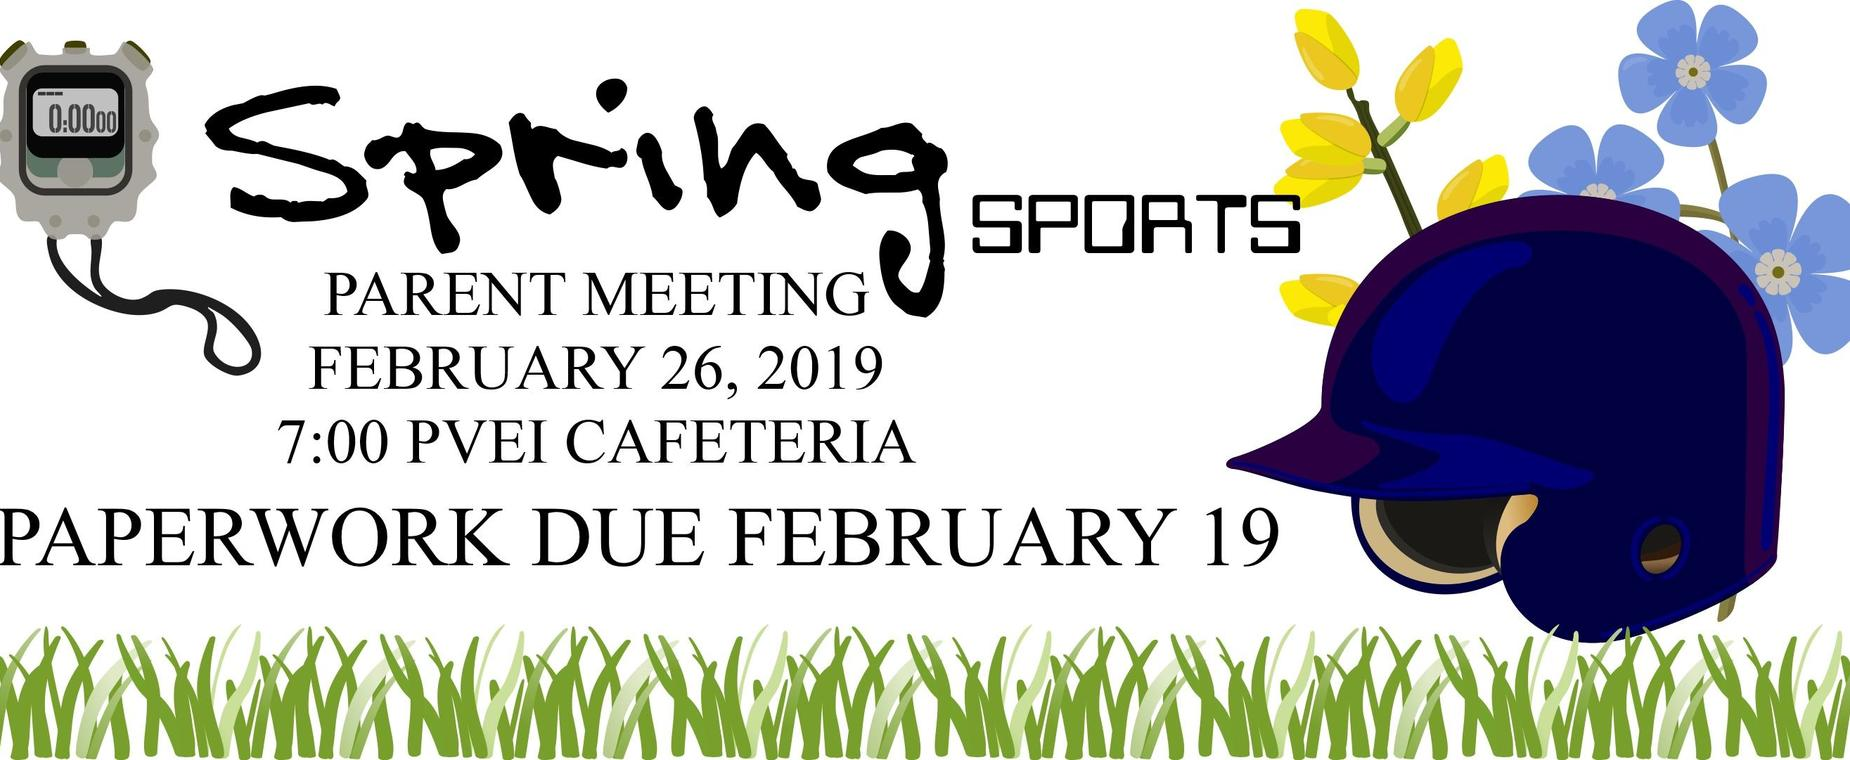 Spring Sports Parent Meeting 7 PM February 26 in the PVEI Cafeteria